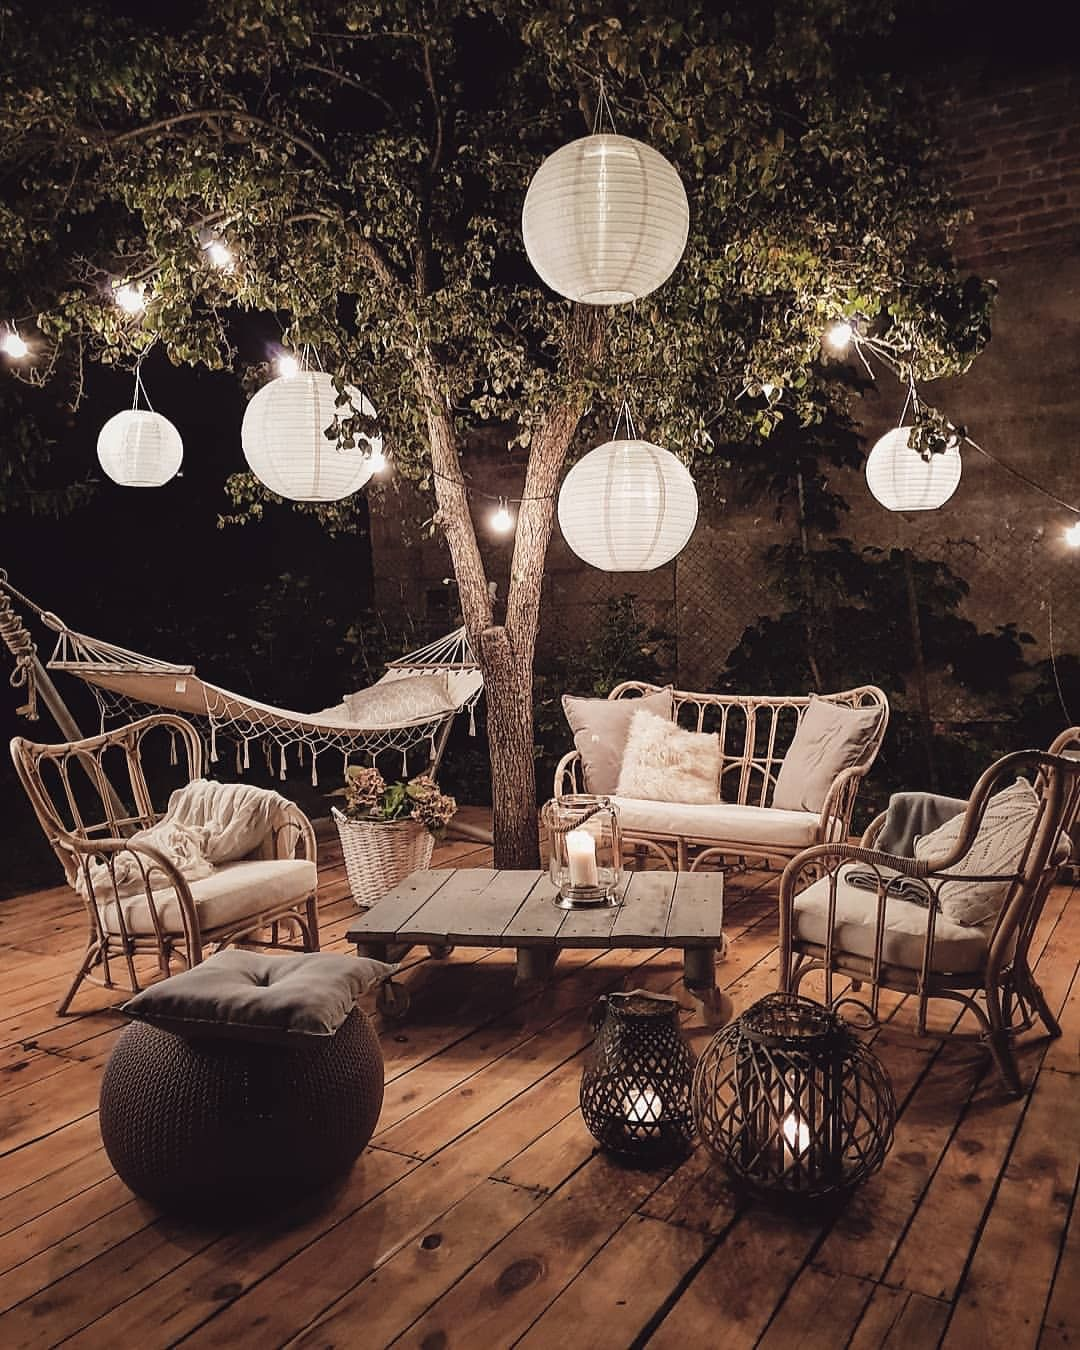 Outdoor Patio Ideas | Outdoor Decor | Outdoor Oasis Backyard | Super Chic Backyard Ideas | Outdoor Space Inspiration | Dream Backyard | 5 Tips for Creating a Cozy Outdoor Oasis at Your Home | Backyards that Inspire Me | Terrace | Porch | Patio Renovation | Patio Remodel | Best Decorated Small Backyards on Pinterest | Boho Patio Inspiration | Outdoor Furniture Inspiration | Cozy Neutral Outdoor Decor | Paper Lanterns Hanging from Trees